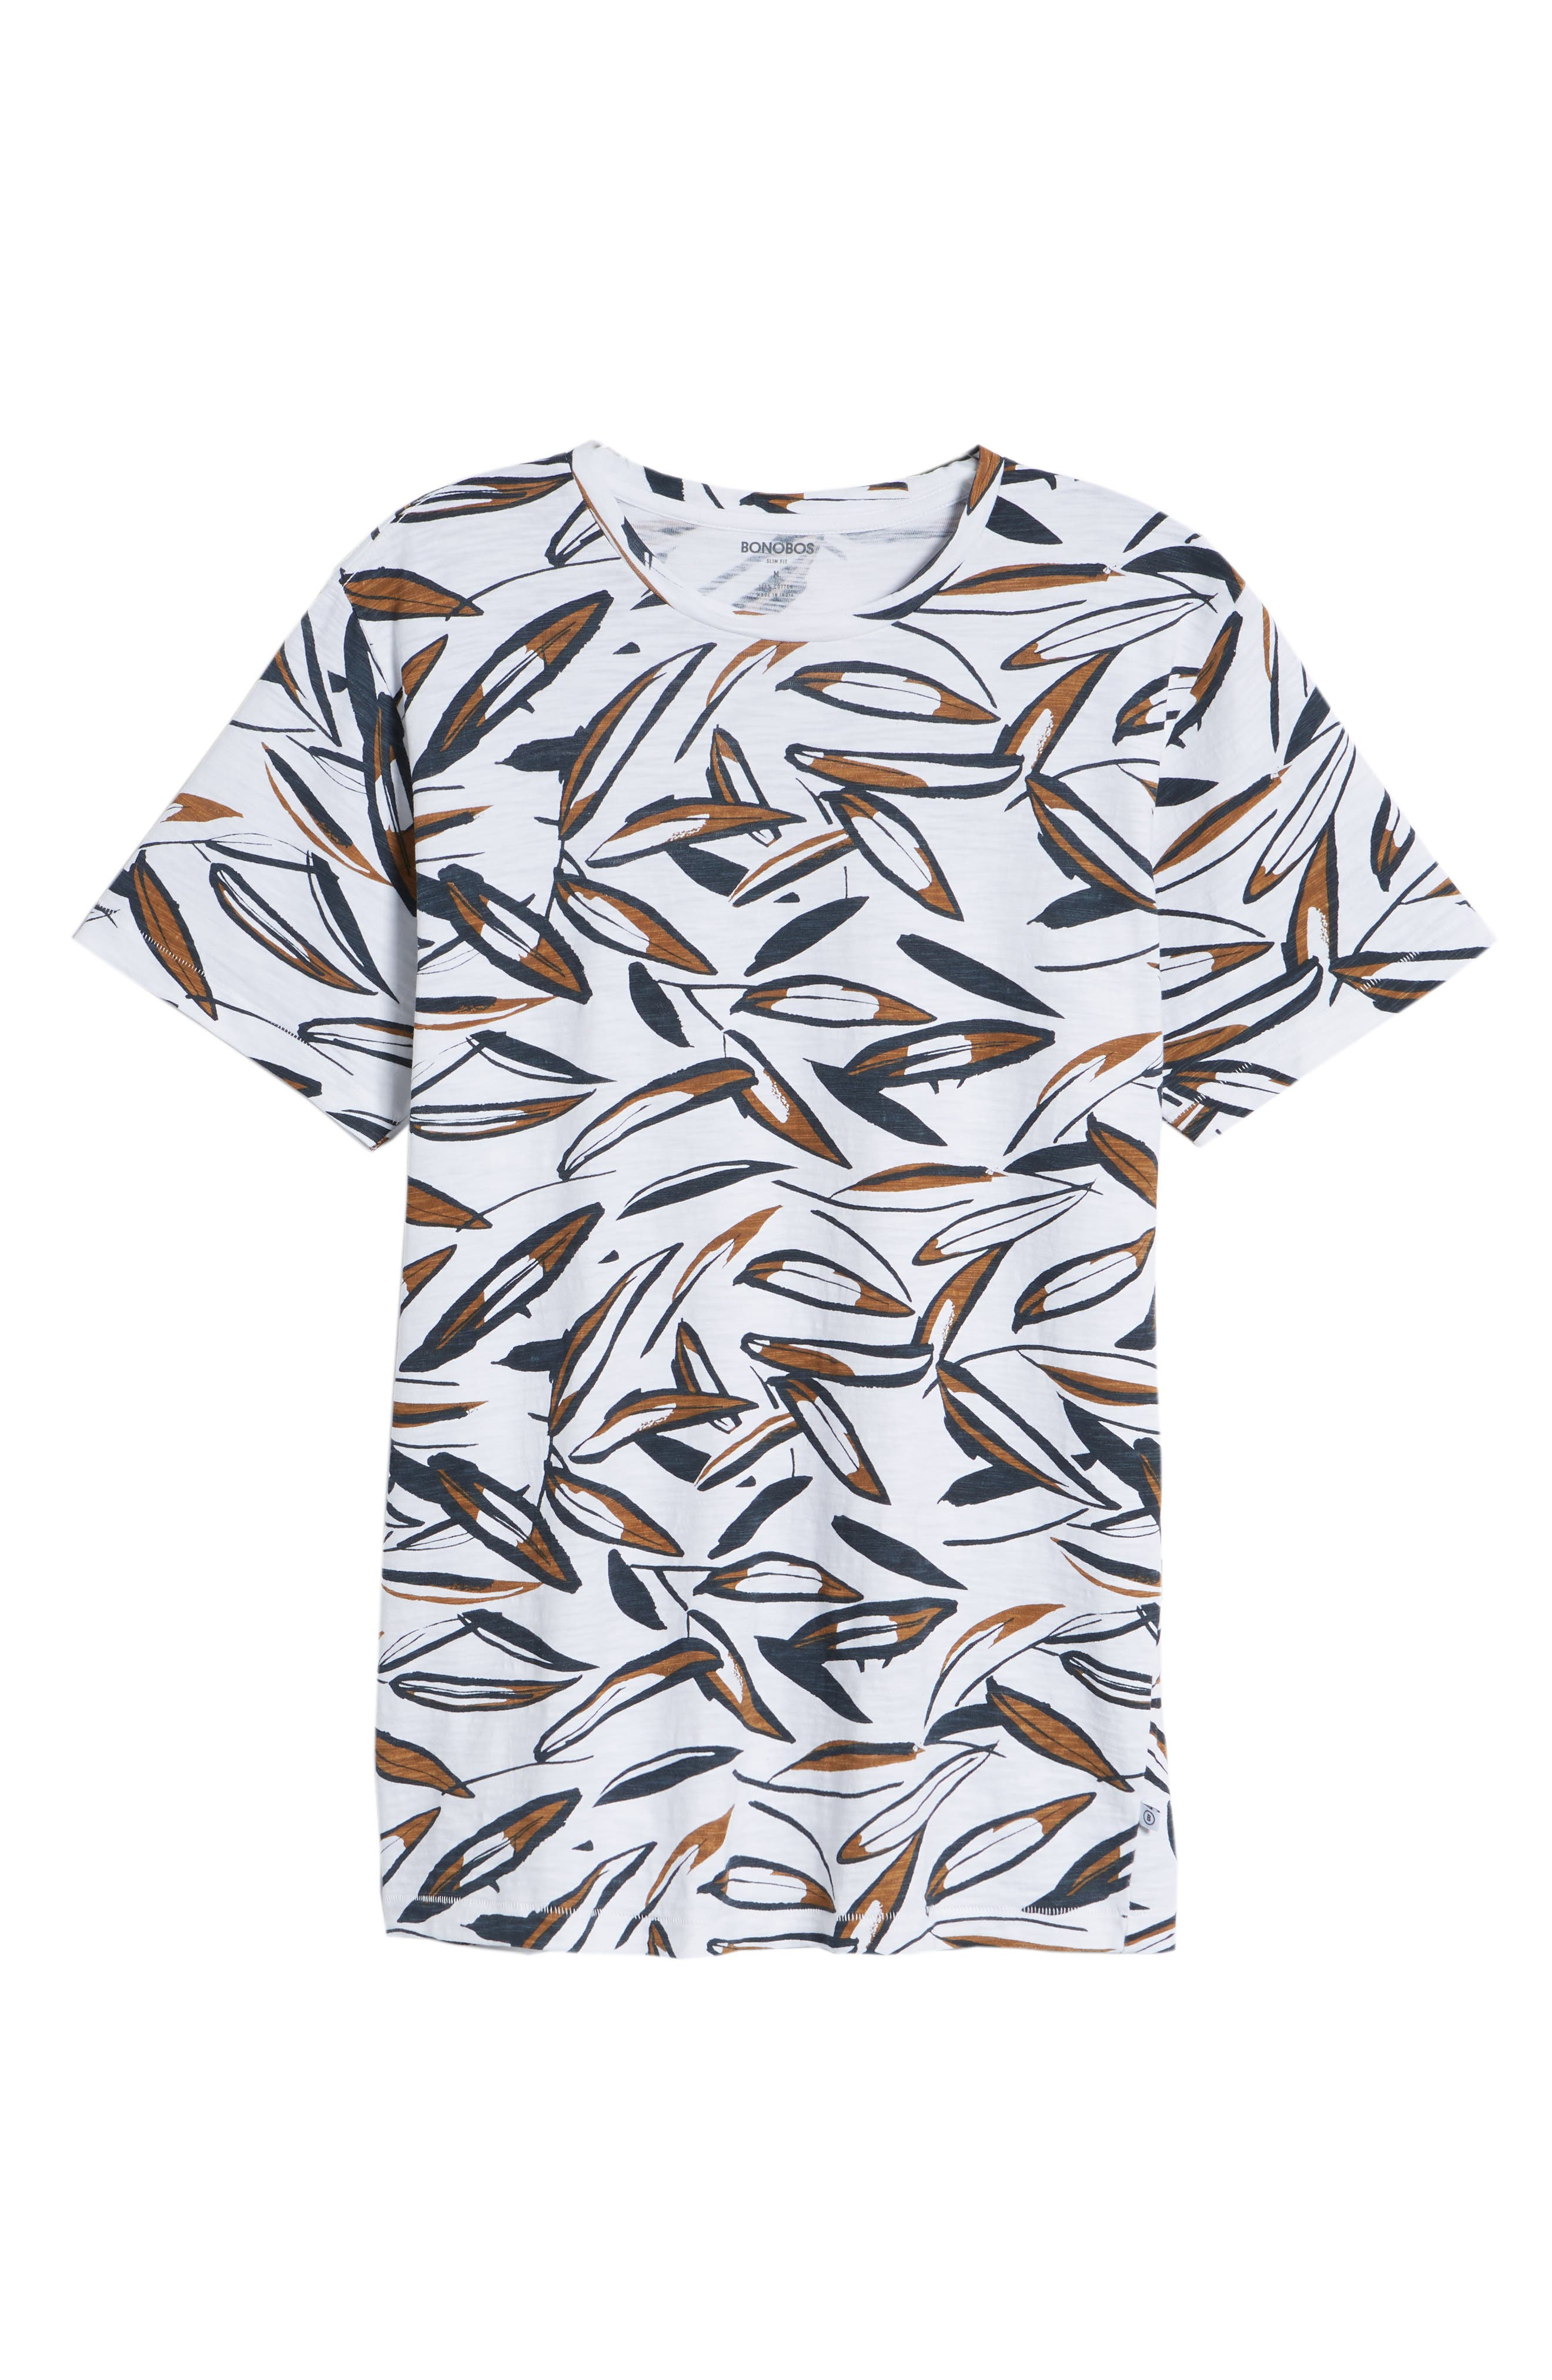 Leafy Arbour Slim Fit Heavyweight T-Shirt,                             Alternate thumbnail 6, color,                             White/ Navy/ Brown Sugar